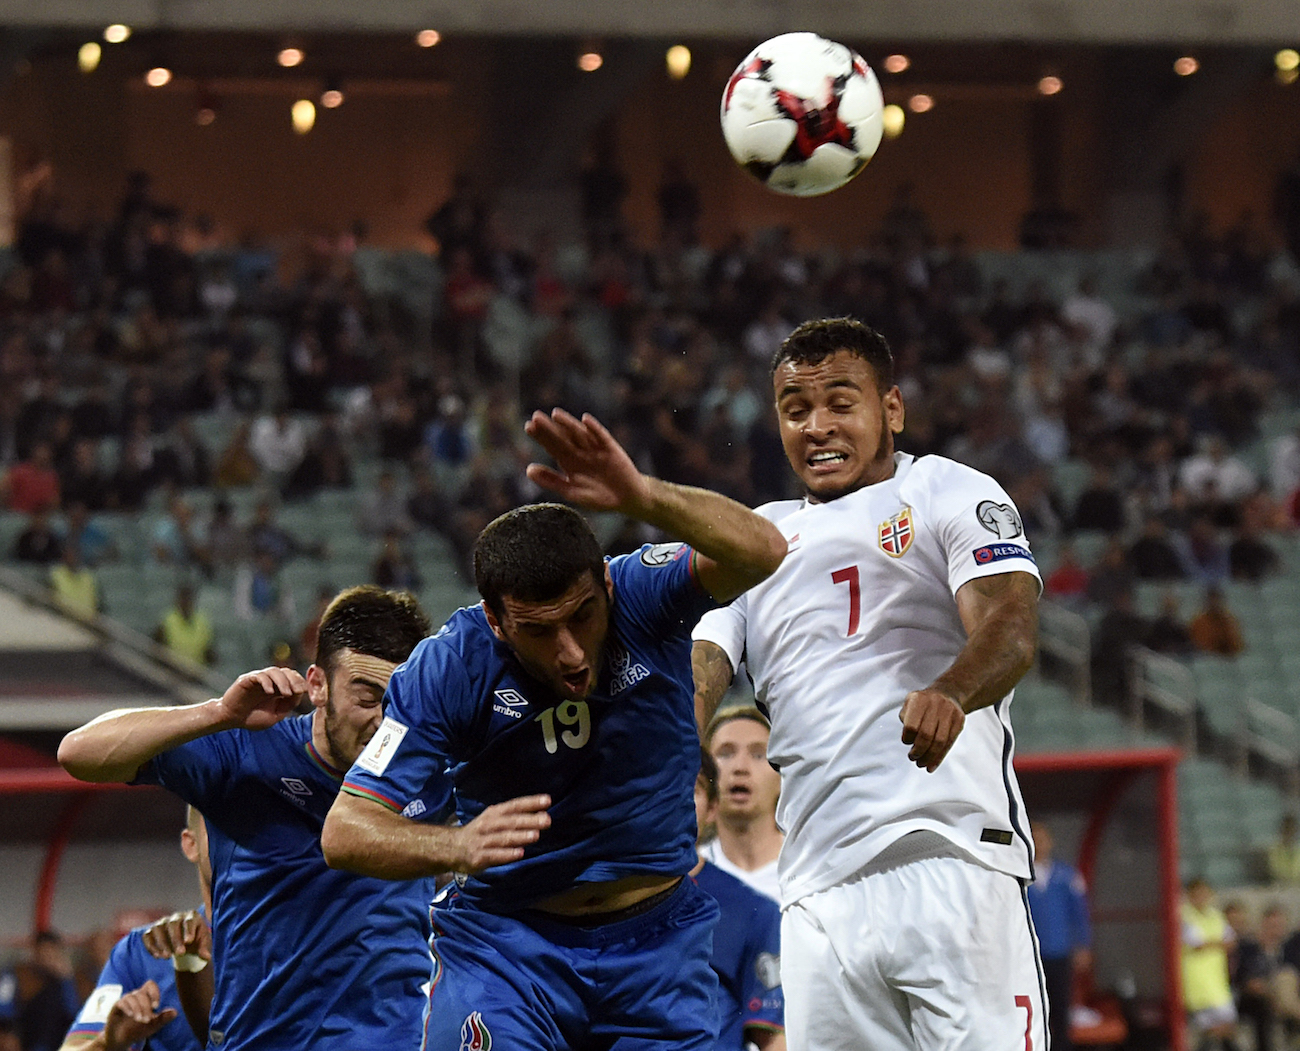 Azerbaijan's midfielder Rahid Amirguliyev (front L) vies with Norway's forward Joshua King during the WC 2018 football qualification match between Azerbaijan and Norway in Baku on October 8, 2016. / AFP / TOFIK BABAYEV (Photo credit should read TOFIK BABAYEV/AFP/Getty Images)